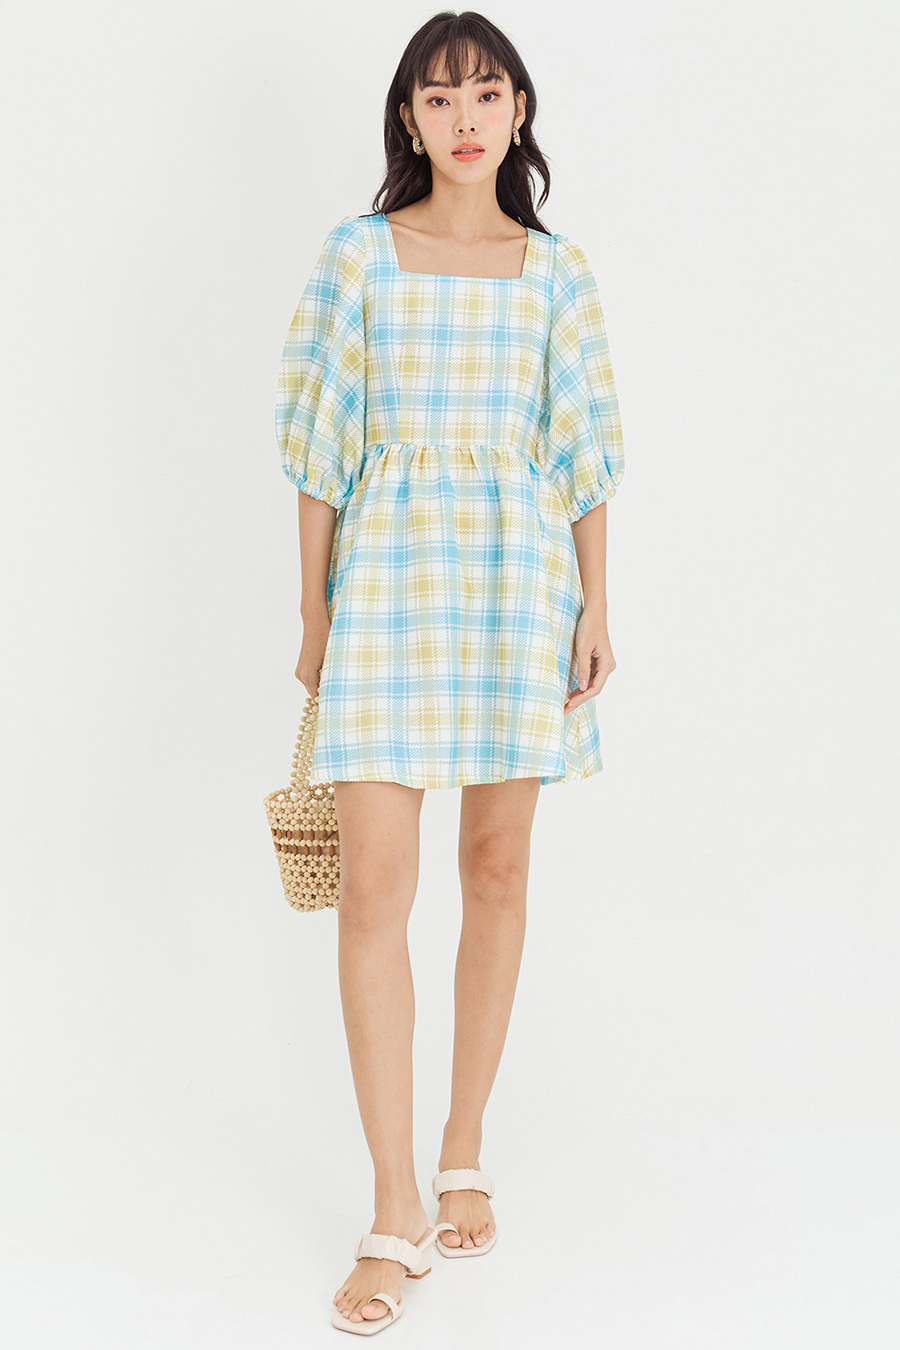 LAURENT DRESS - PLAID [BY MODPARADE]